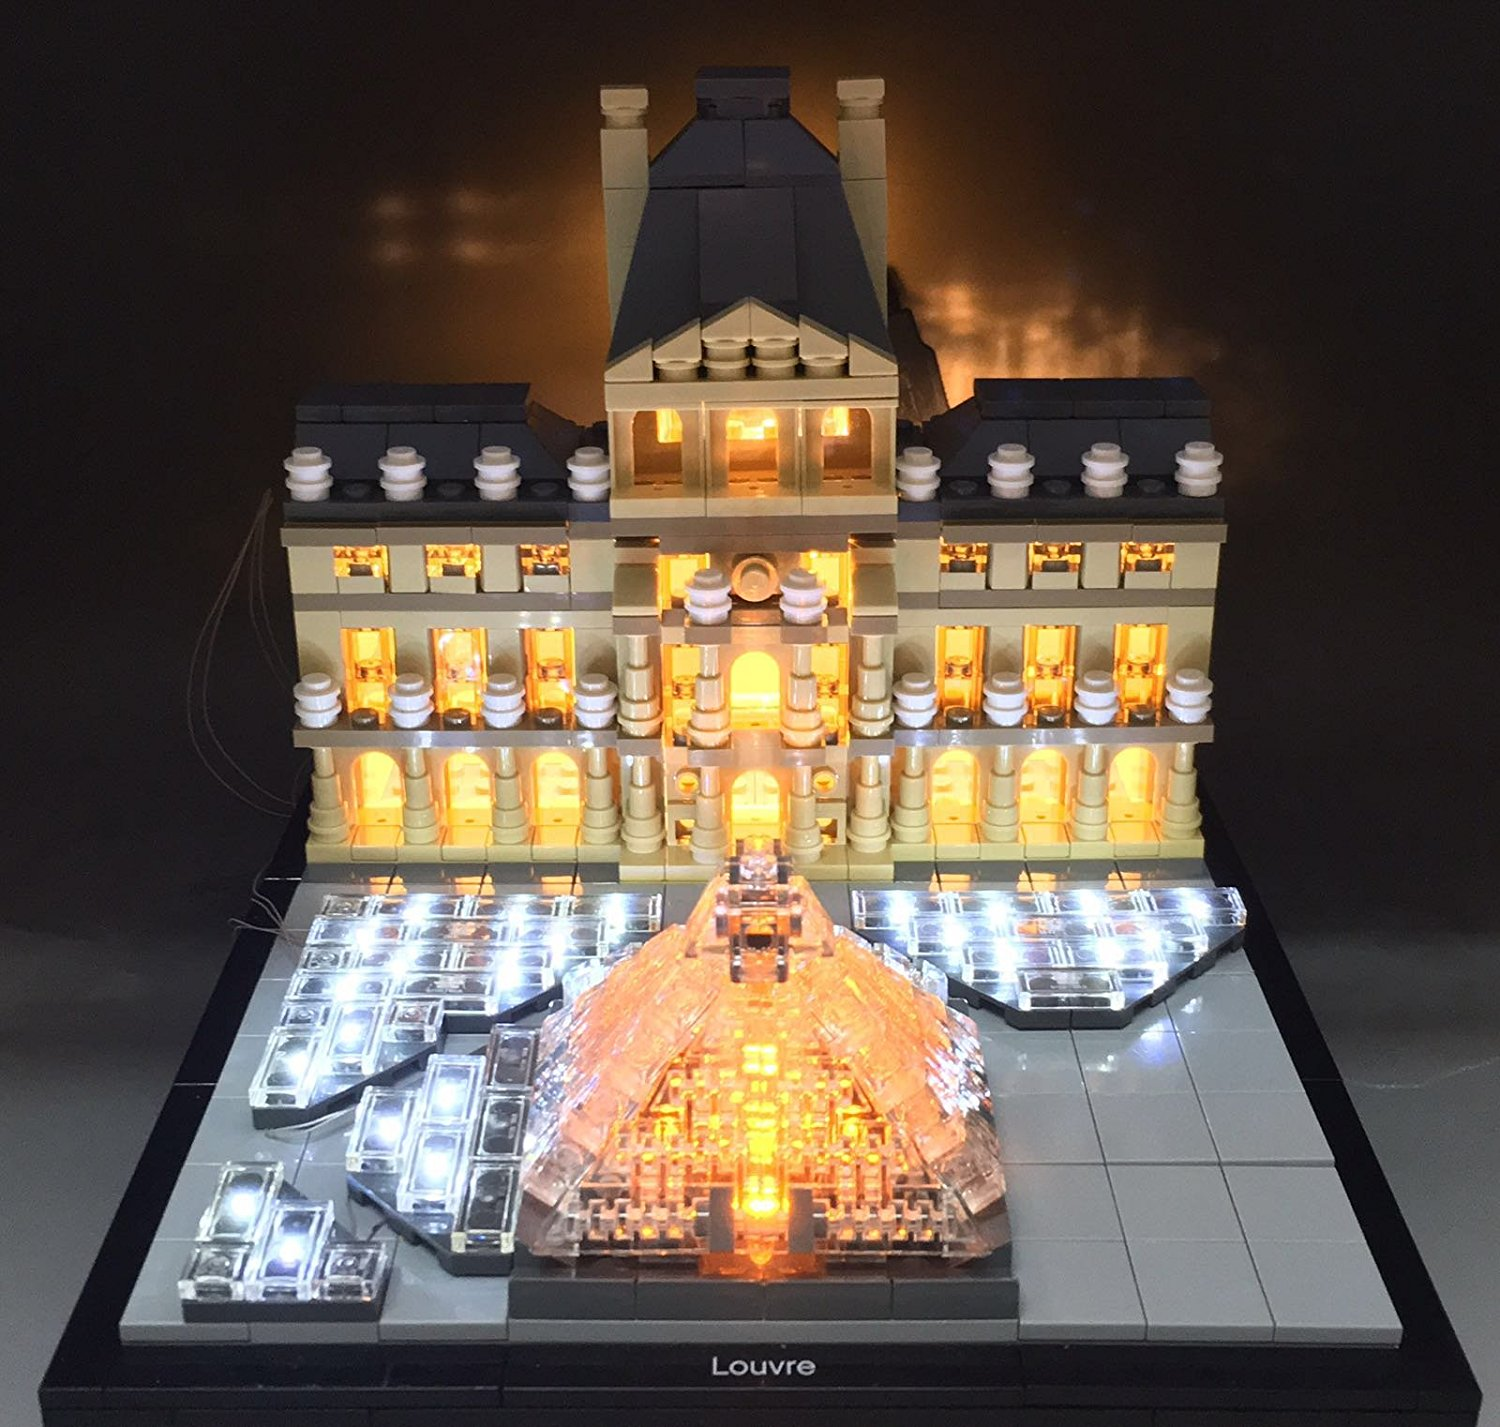 lego lighting. Get Quotations · Louvre Lighting Kit For Lego 21024 Set (LEGO Not Included) By Brick Loot T